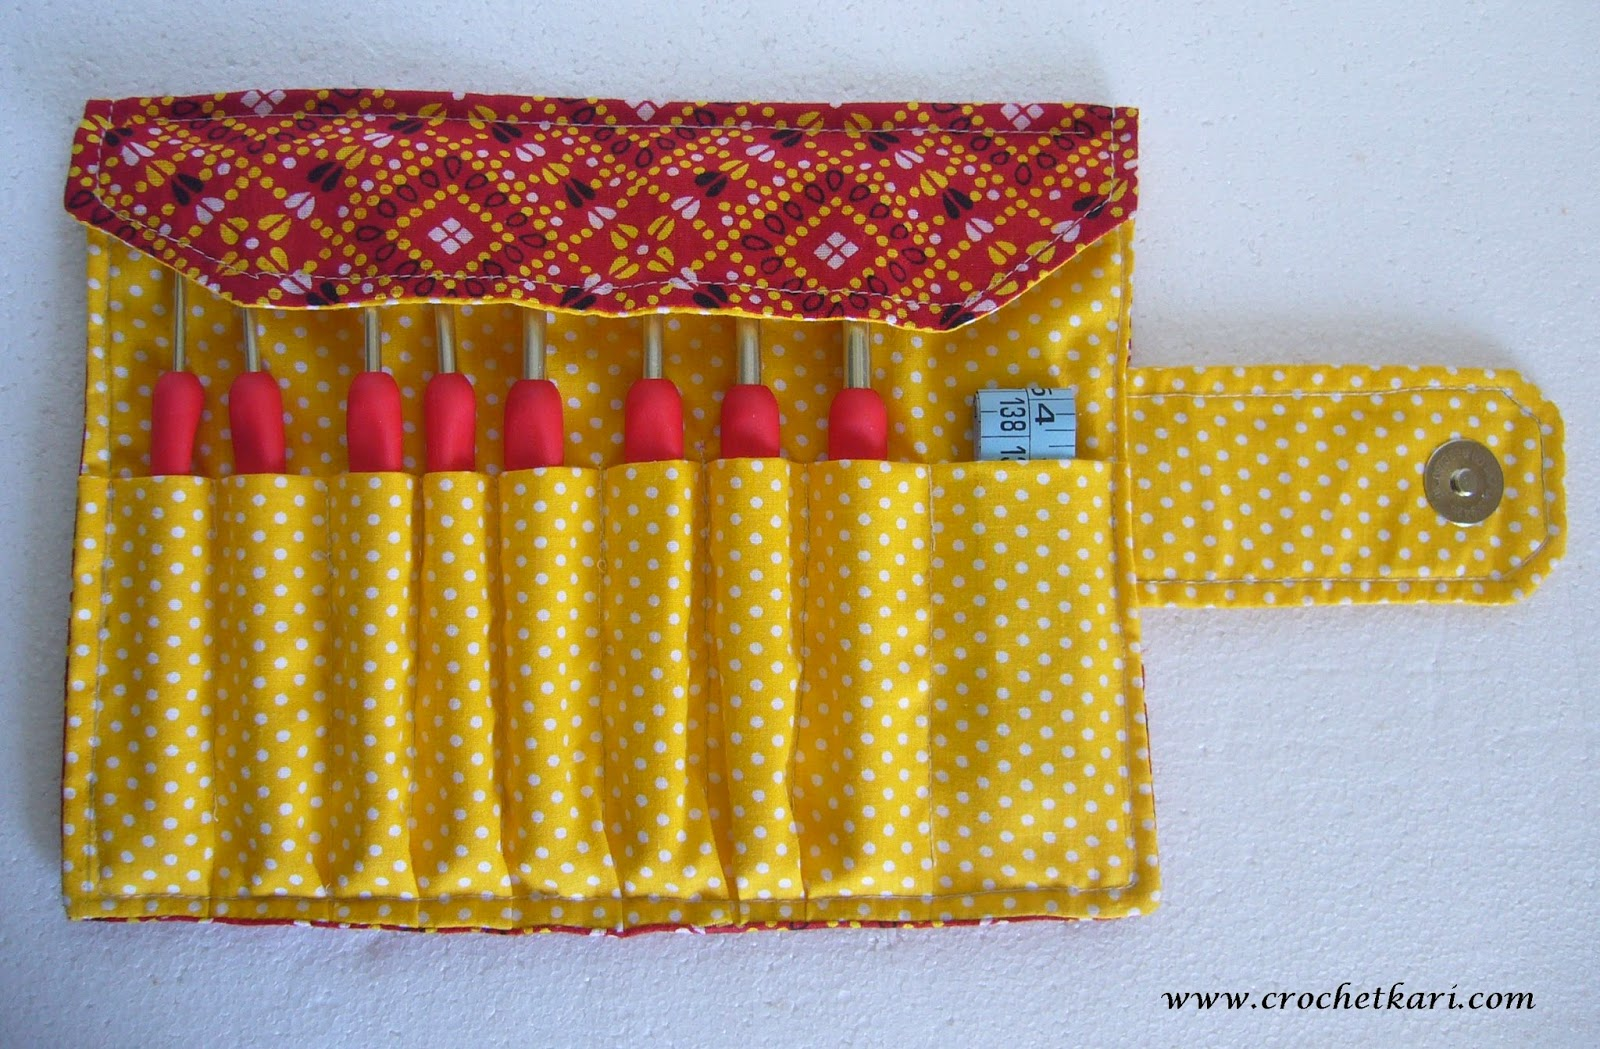 Crochetkari Crochet hook case